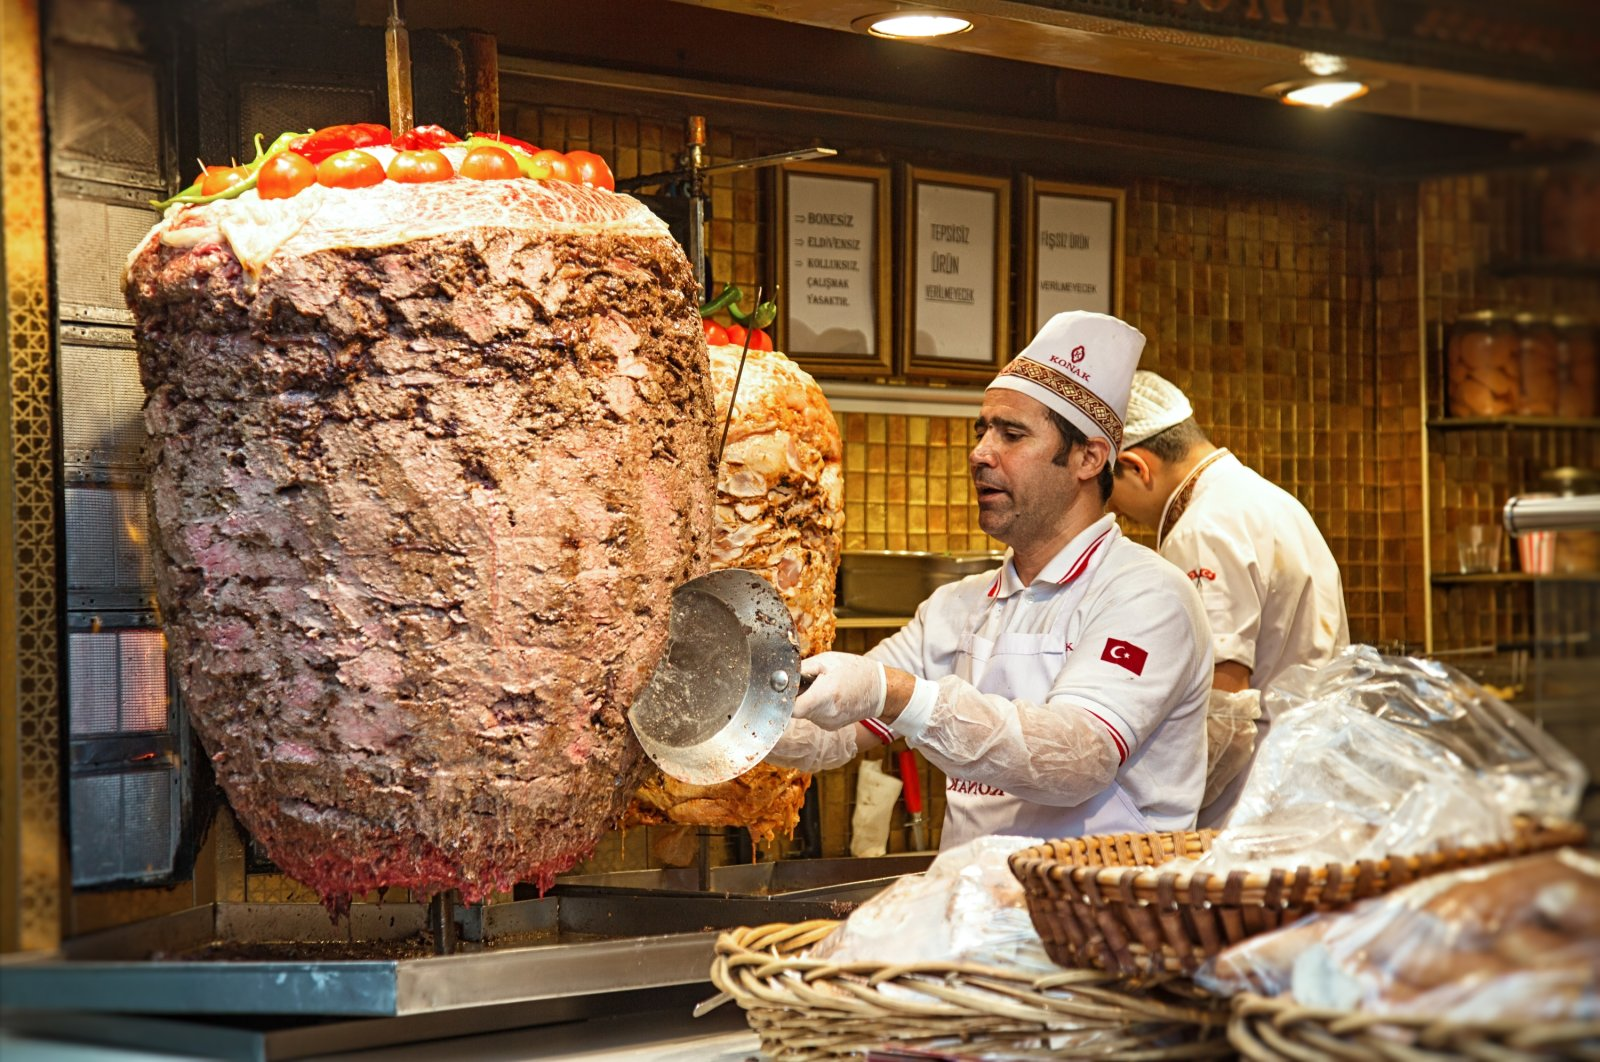 Döner kebab is probably the most widely known meat dish associated with Turkey across the world. (Shutterstock Photo)